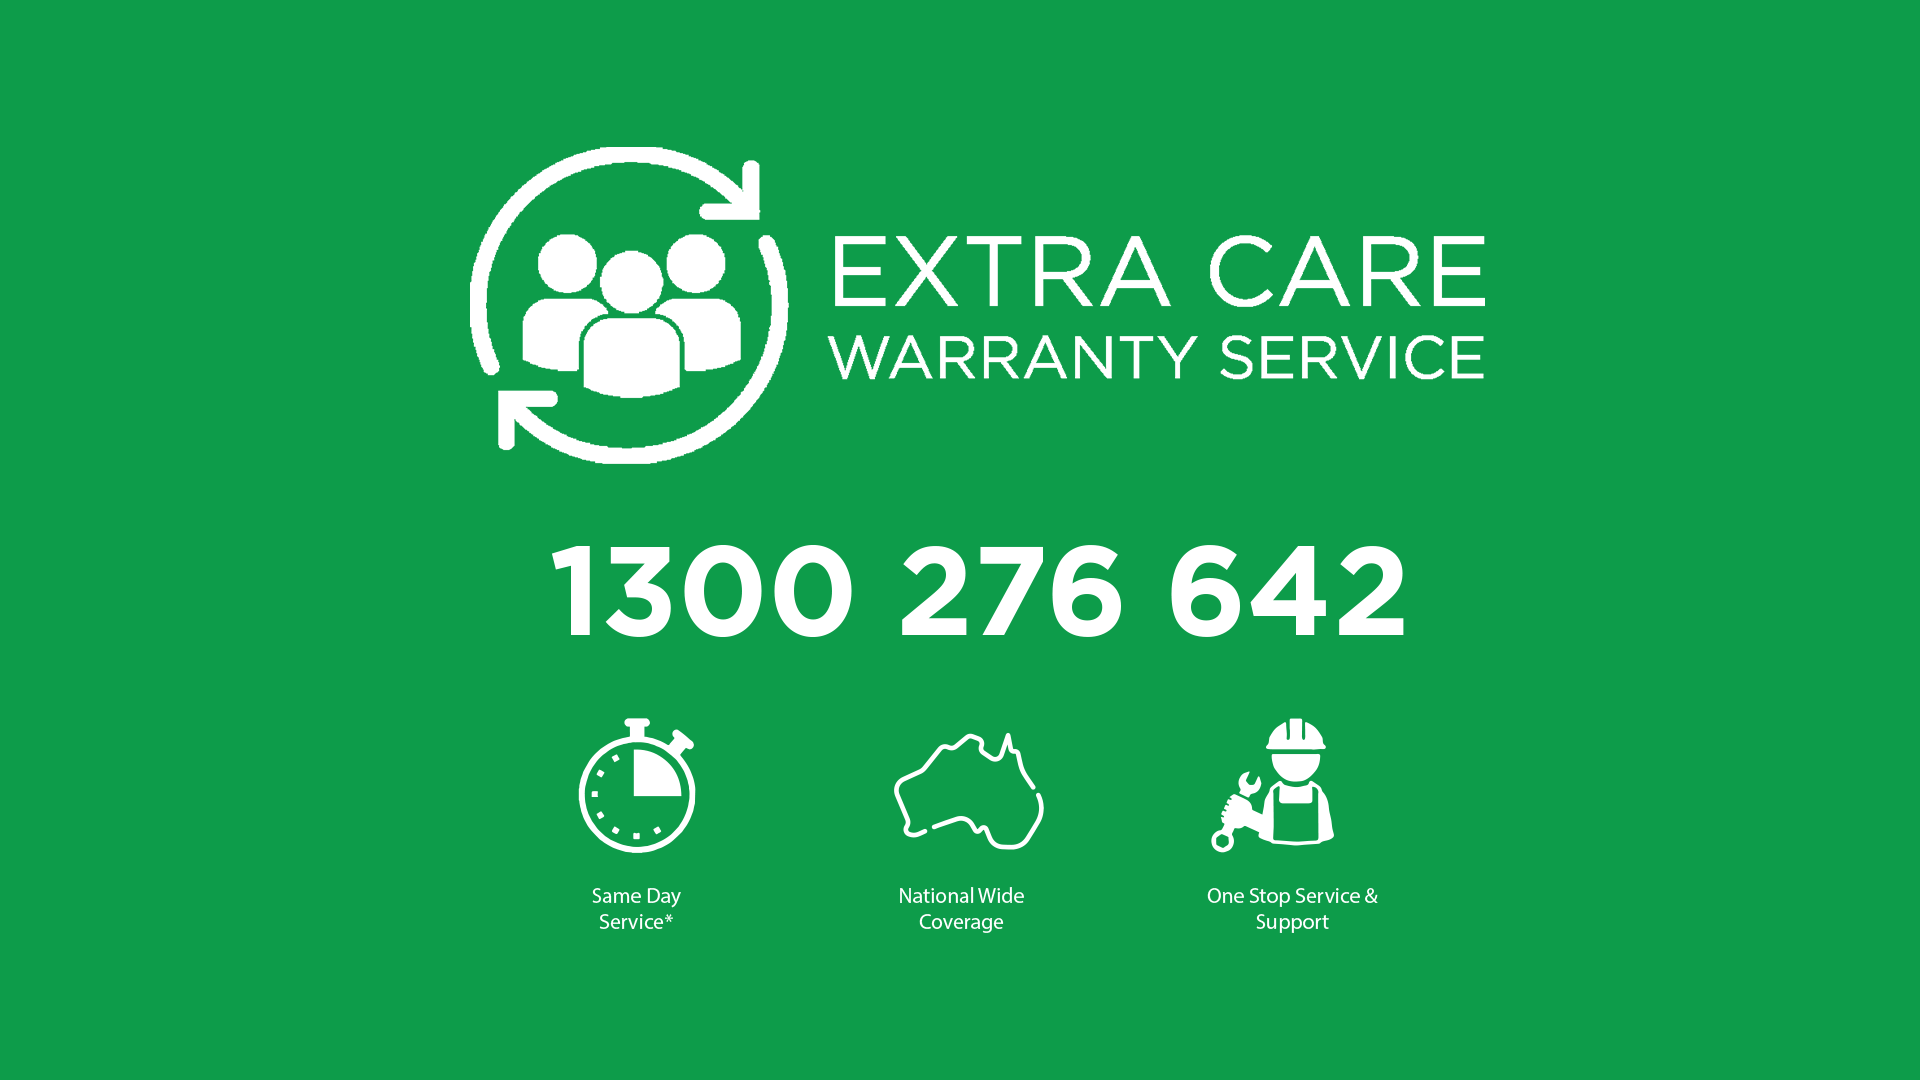 Extra Care Warranty Service Image – Call 1300 276 642 to lodge a warranty claim.